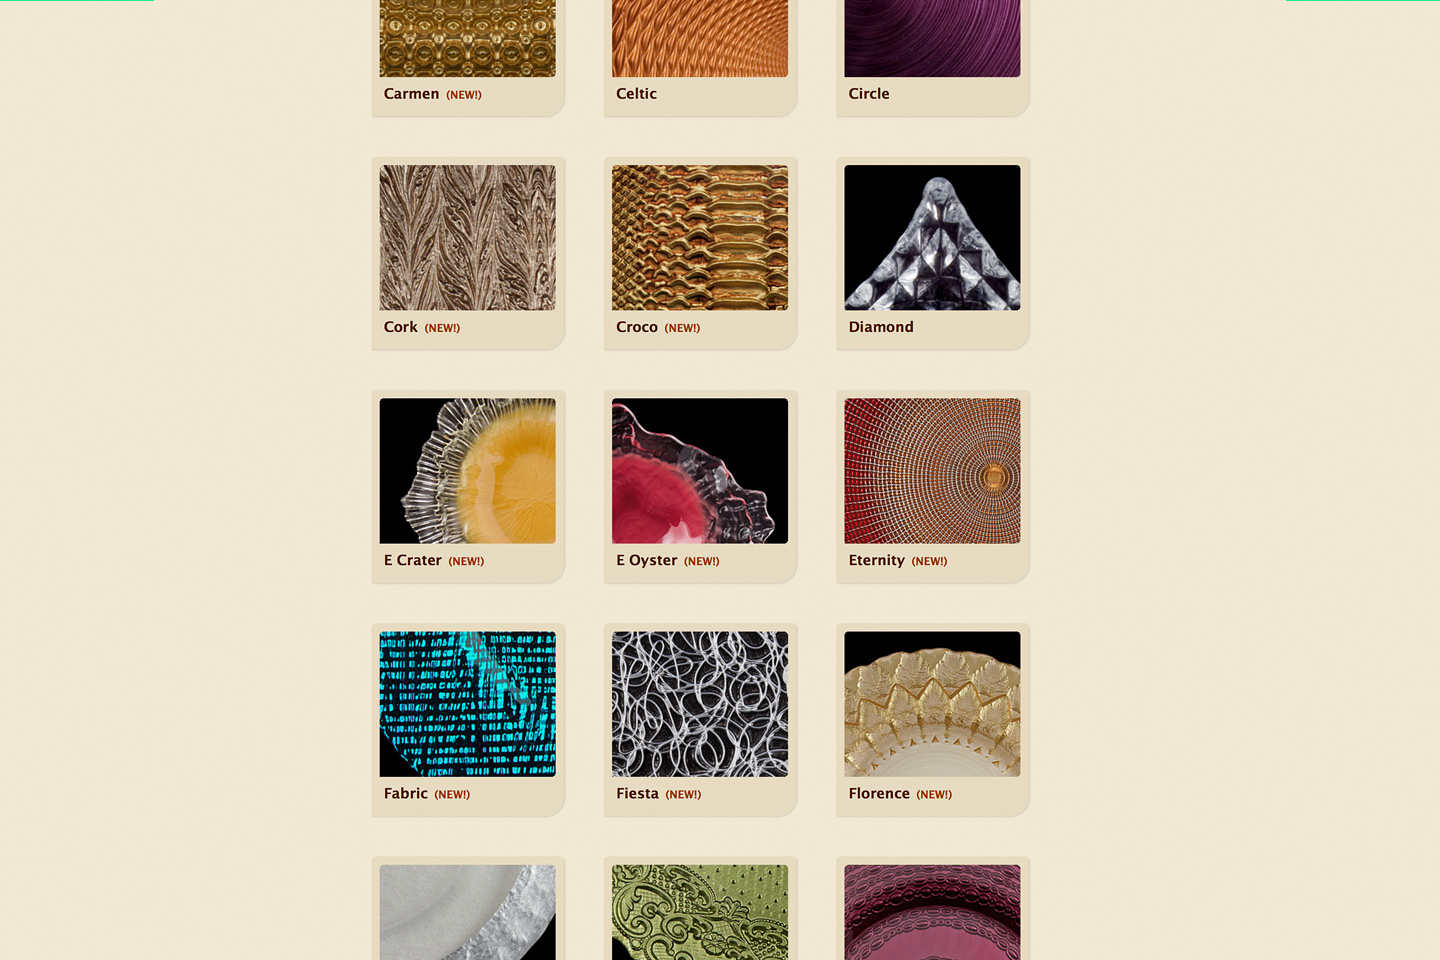 a screen capture of the mandarin orange trading company new collections chargers family, featuring thumbnails of all the new collections charger patterns